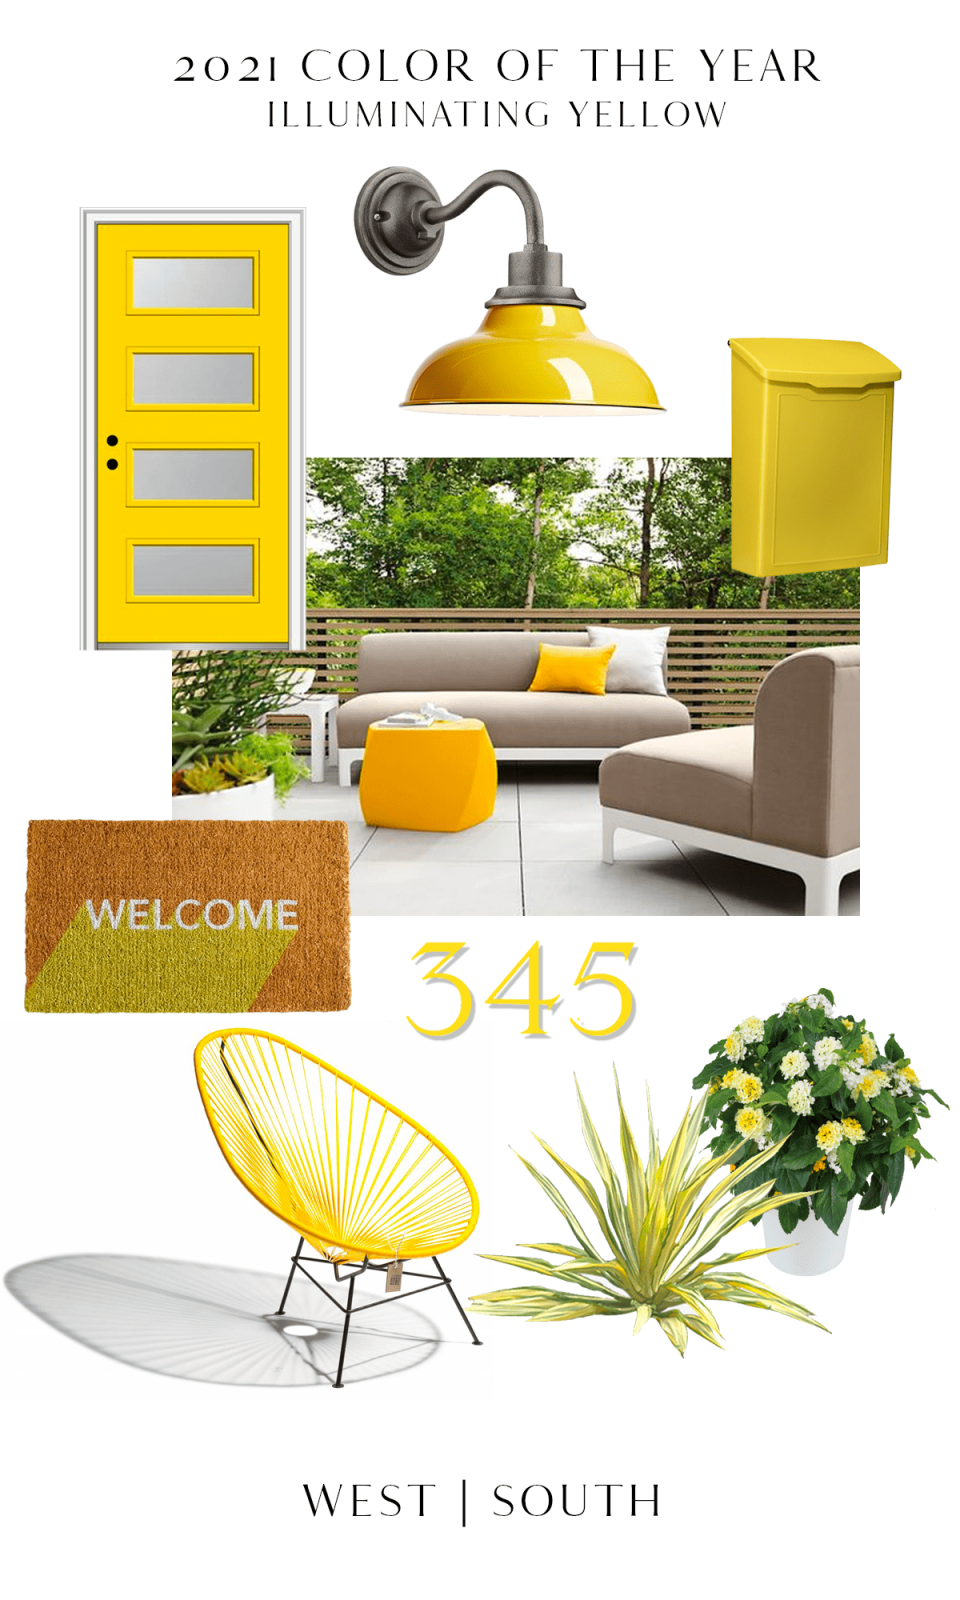 round up image showing vibrant yellow curb appeal and exterior items